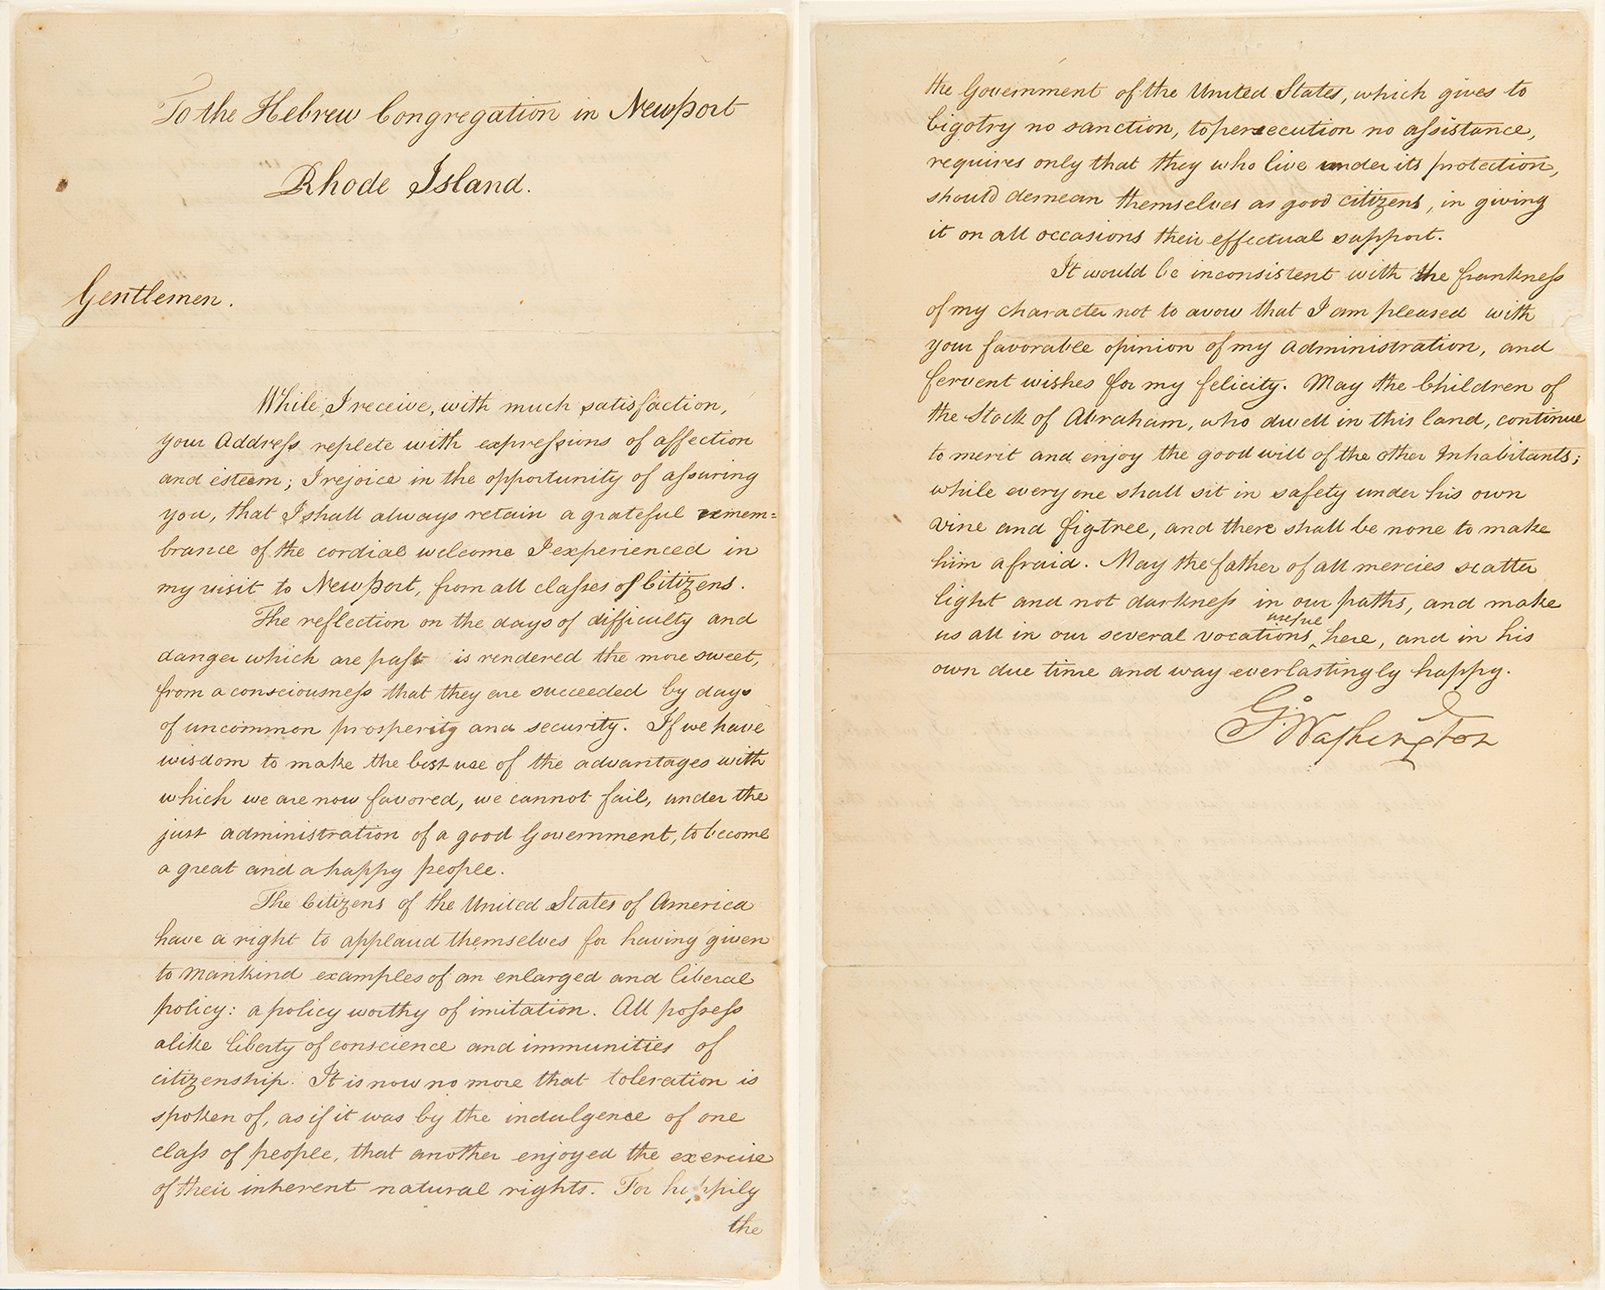 George Washington's 1790 letter to Moses Seixas. Courtesy of the National Museum of American Jewish History.